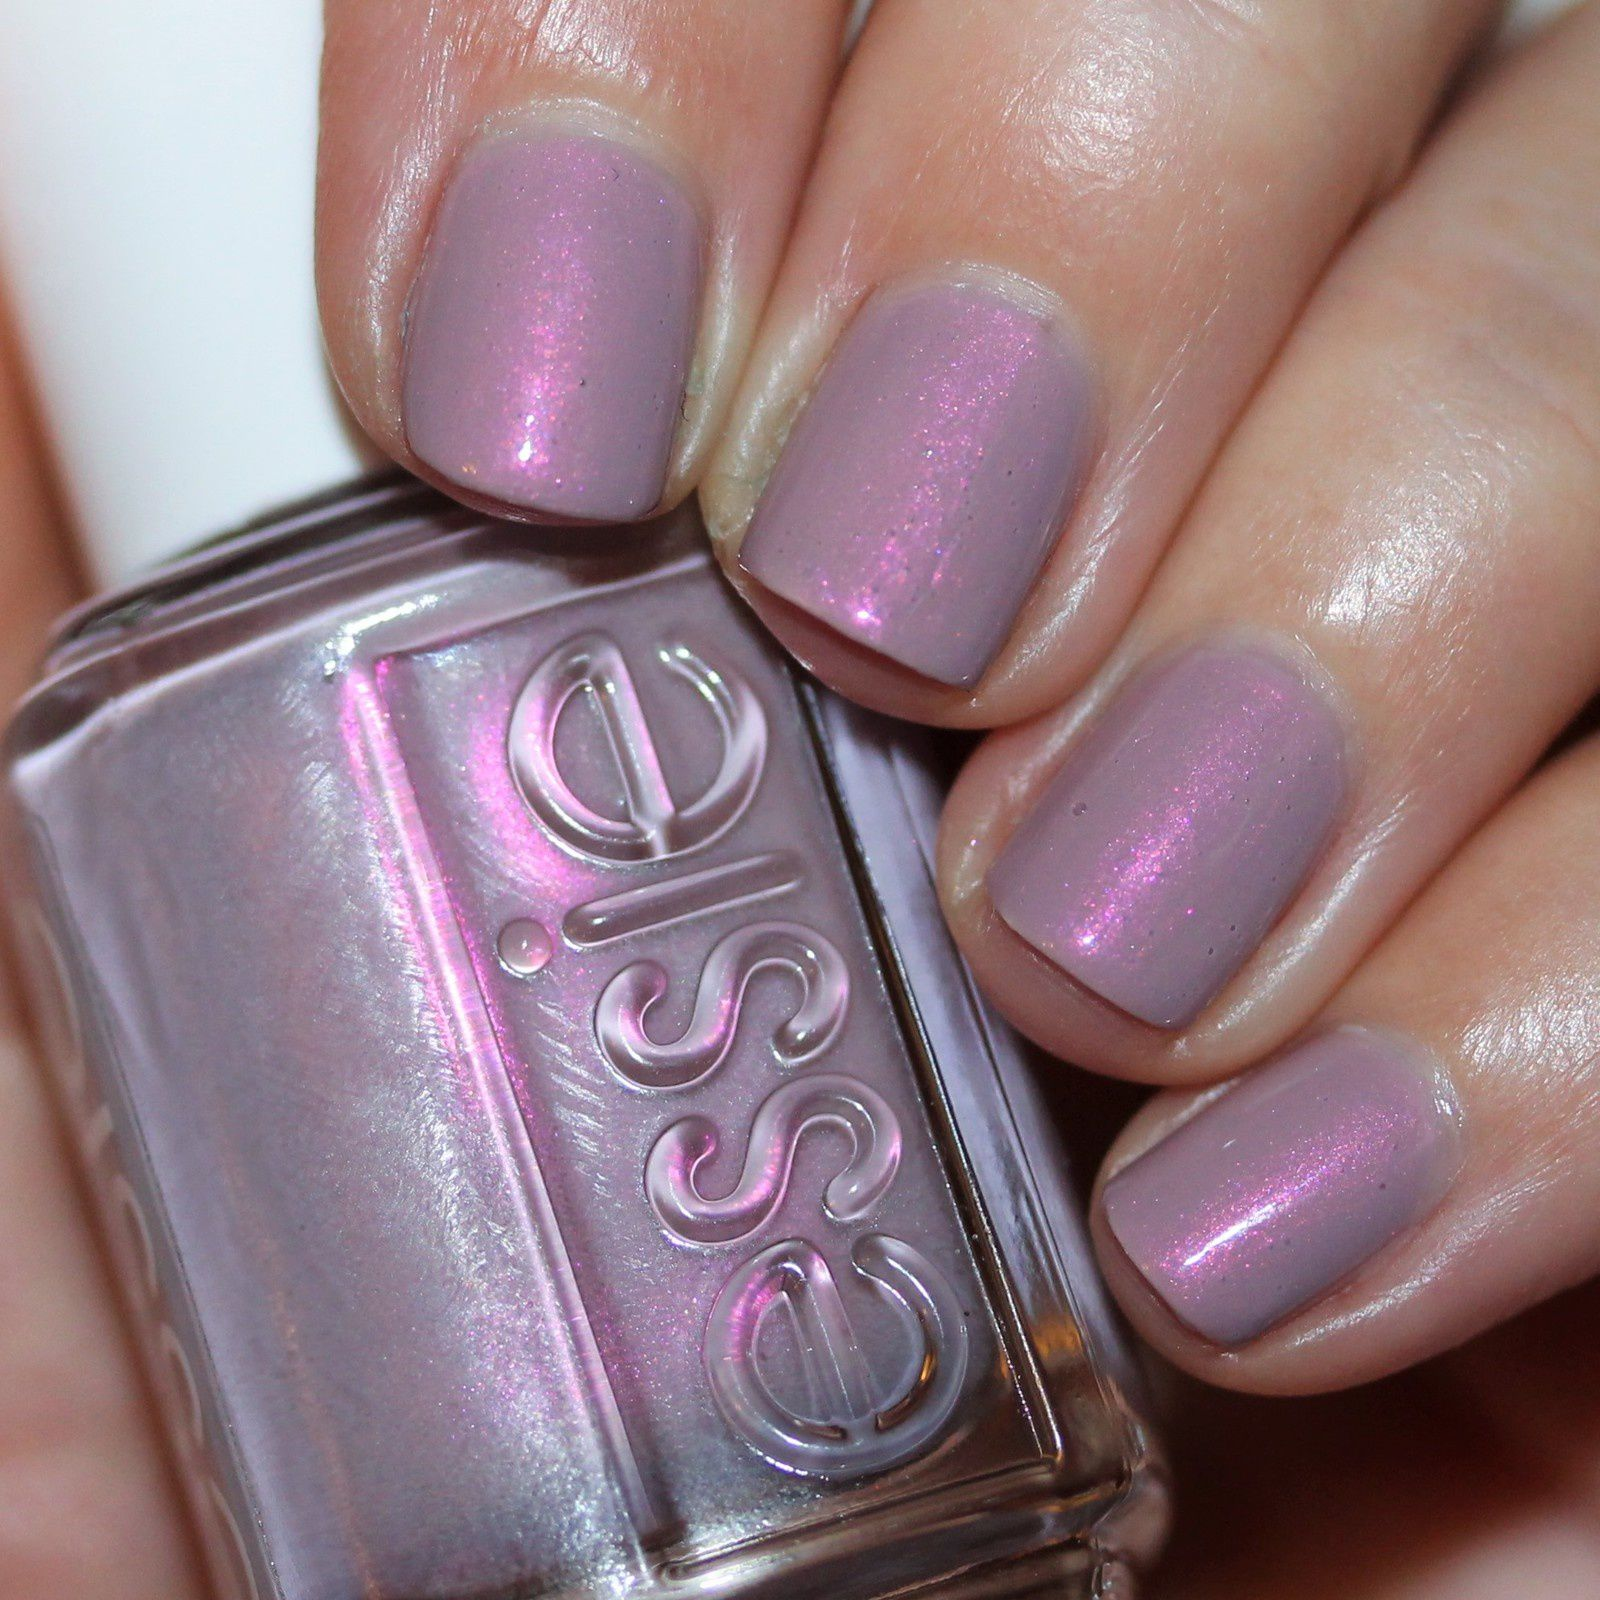 Essie Protein Base Coat / Essie Wire-less is More / Poshe Top Coat